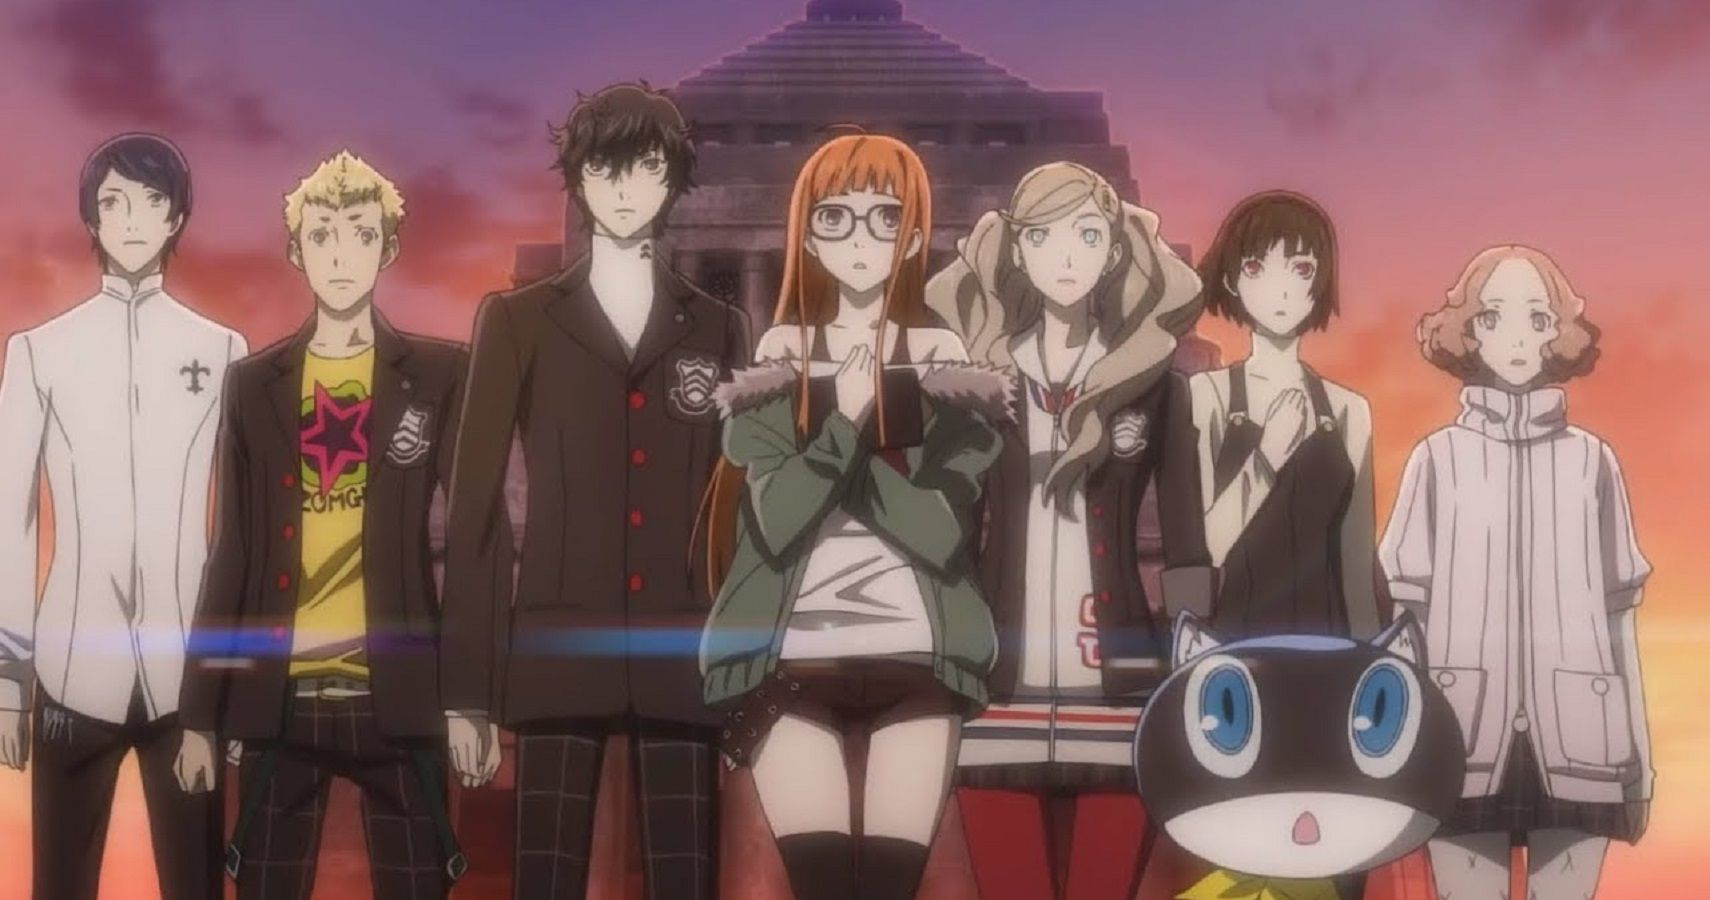 Persona 5's Anime Cutscenes Need Their Own Game